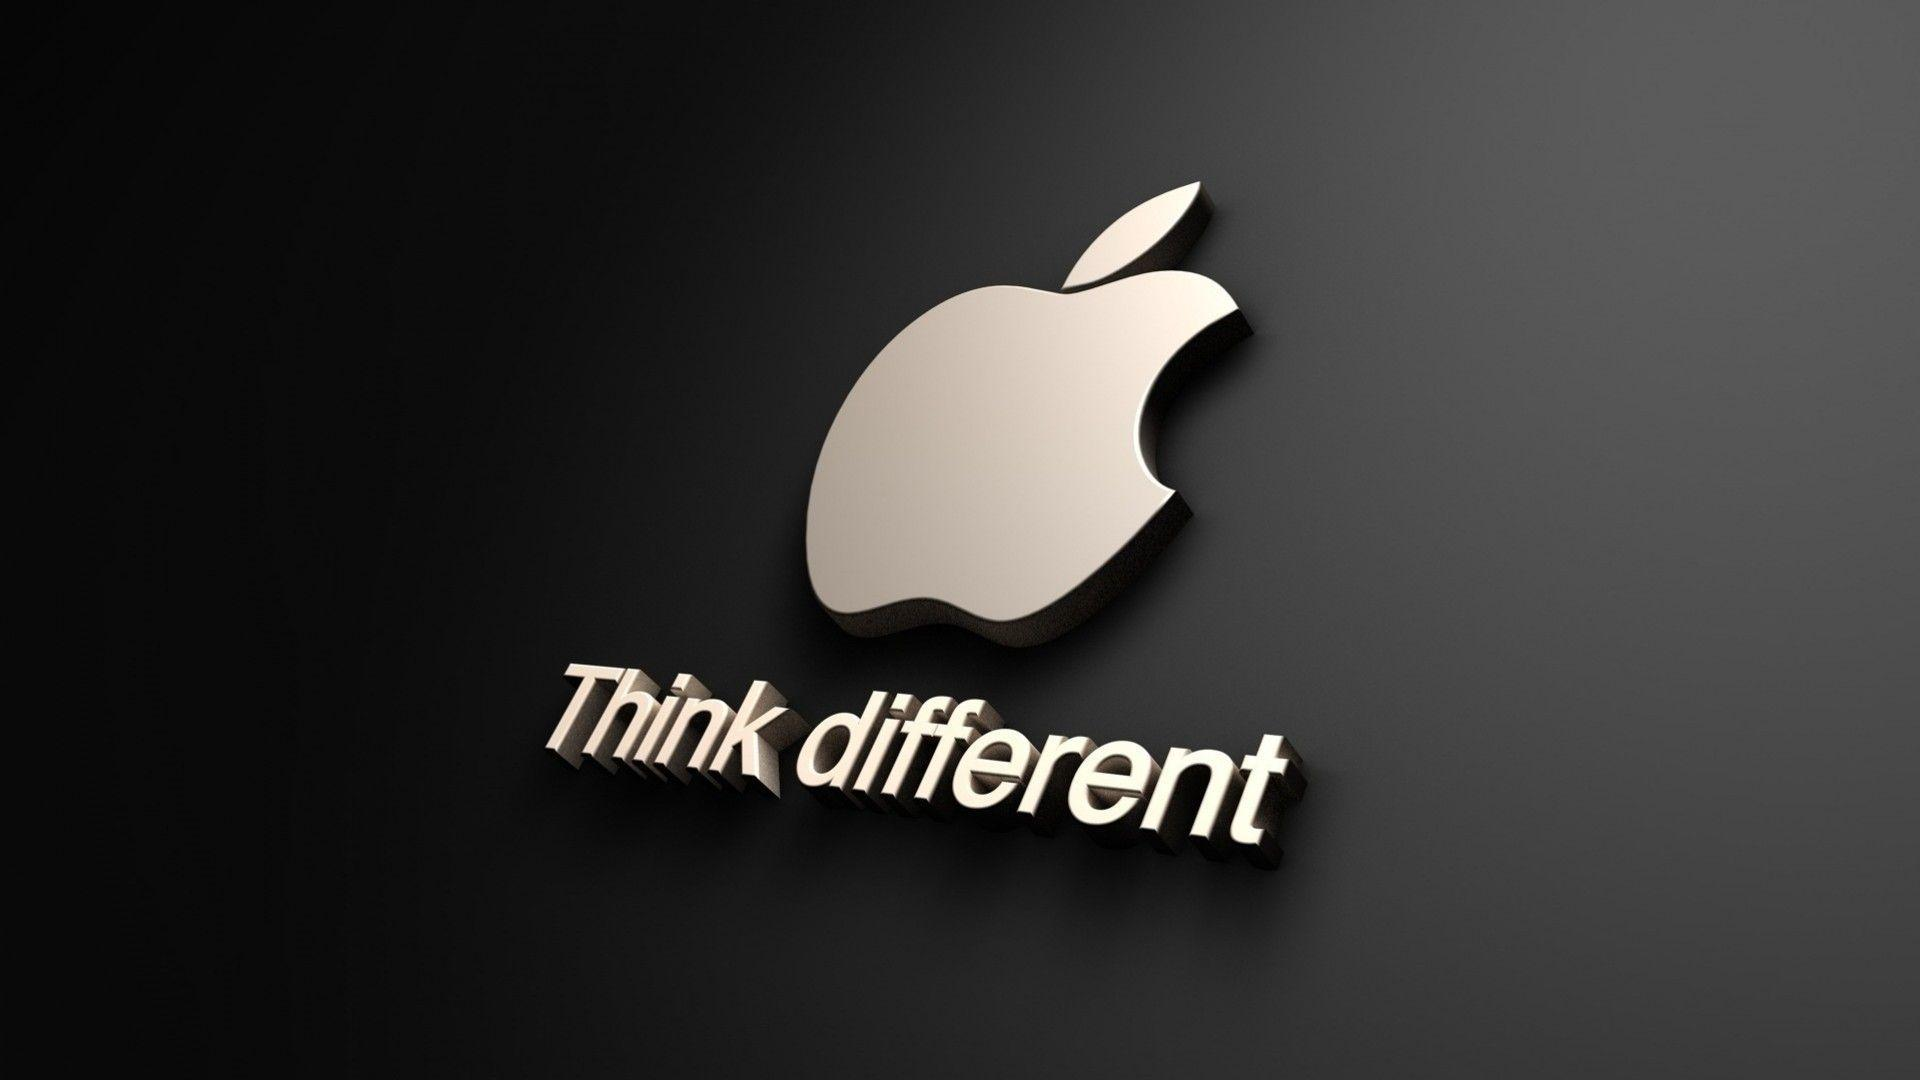 Apple Laptop Wallpapers - Wallpaper Cave